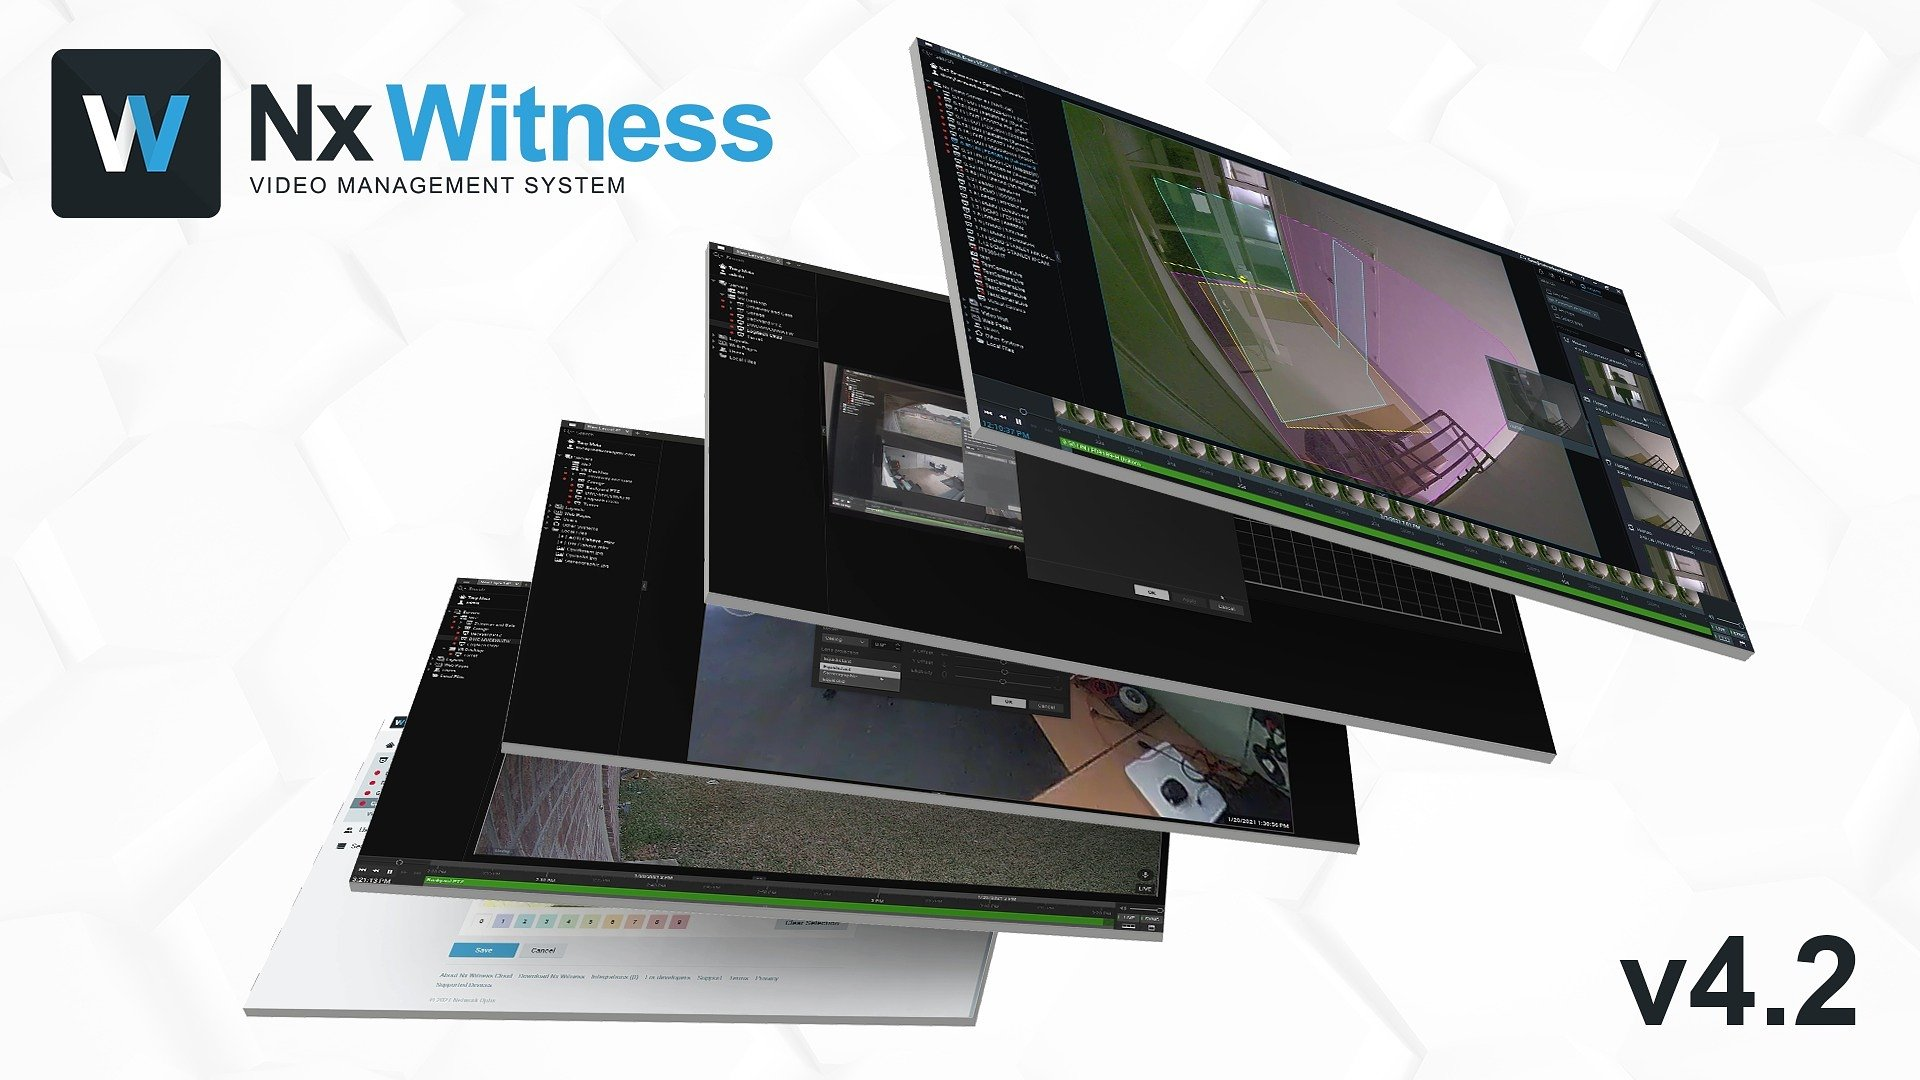 Nx Witness v4.2 - Available Now from Network Optix